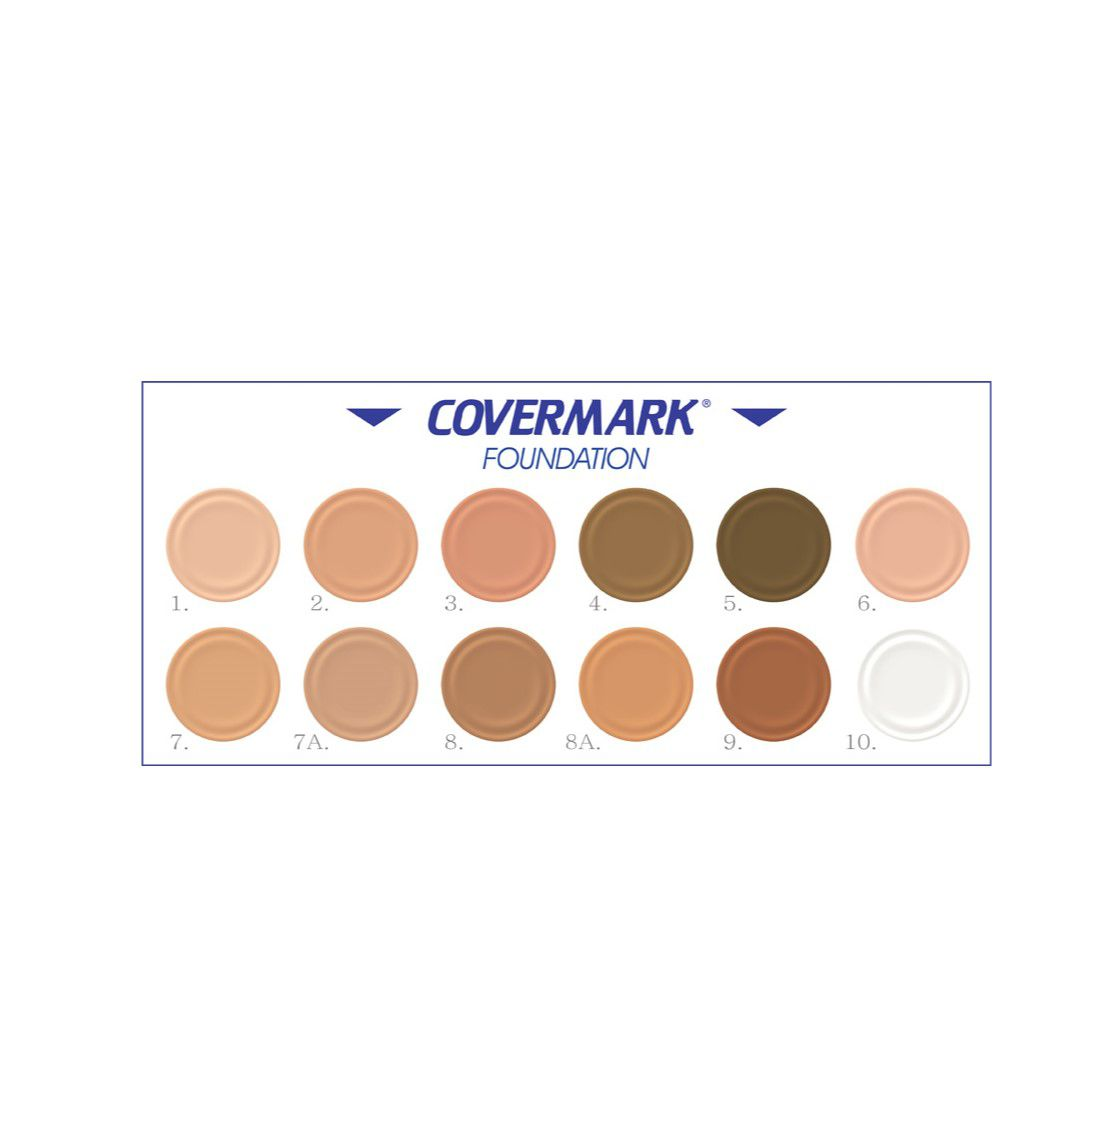 Amostra Covermark Foundation - Refil